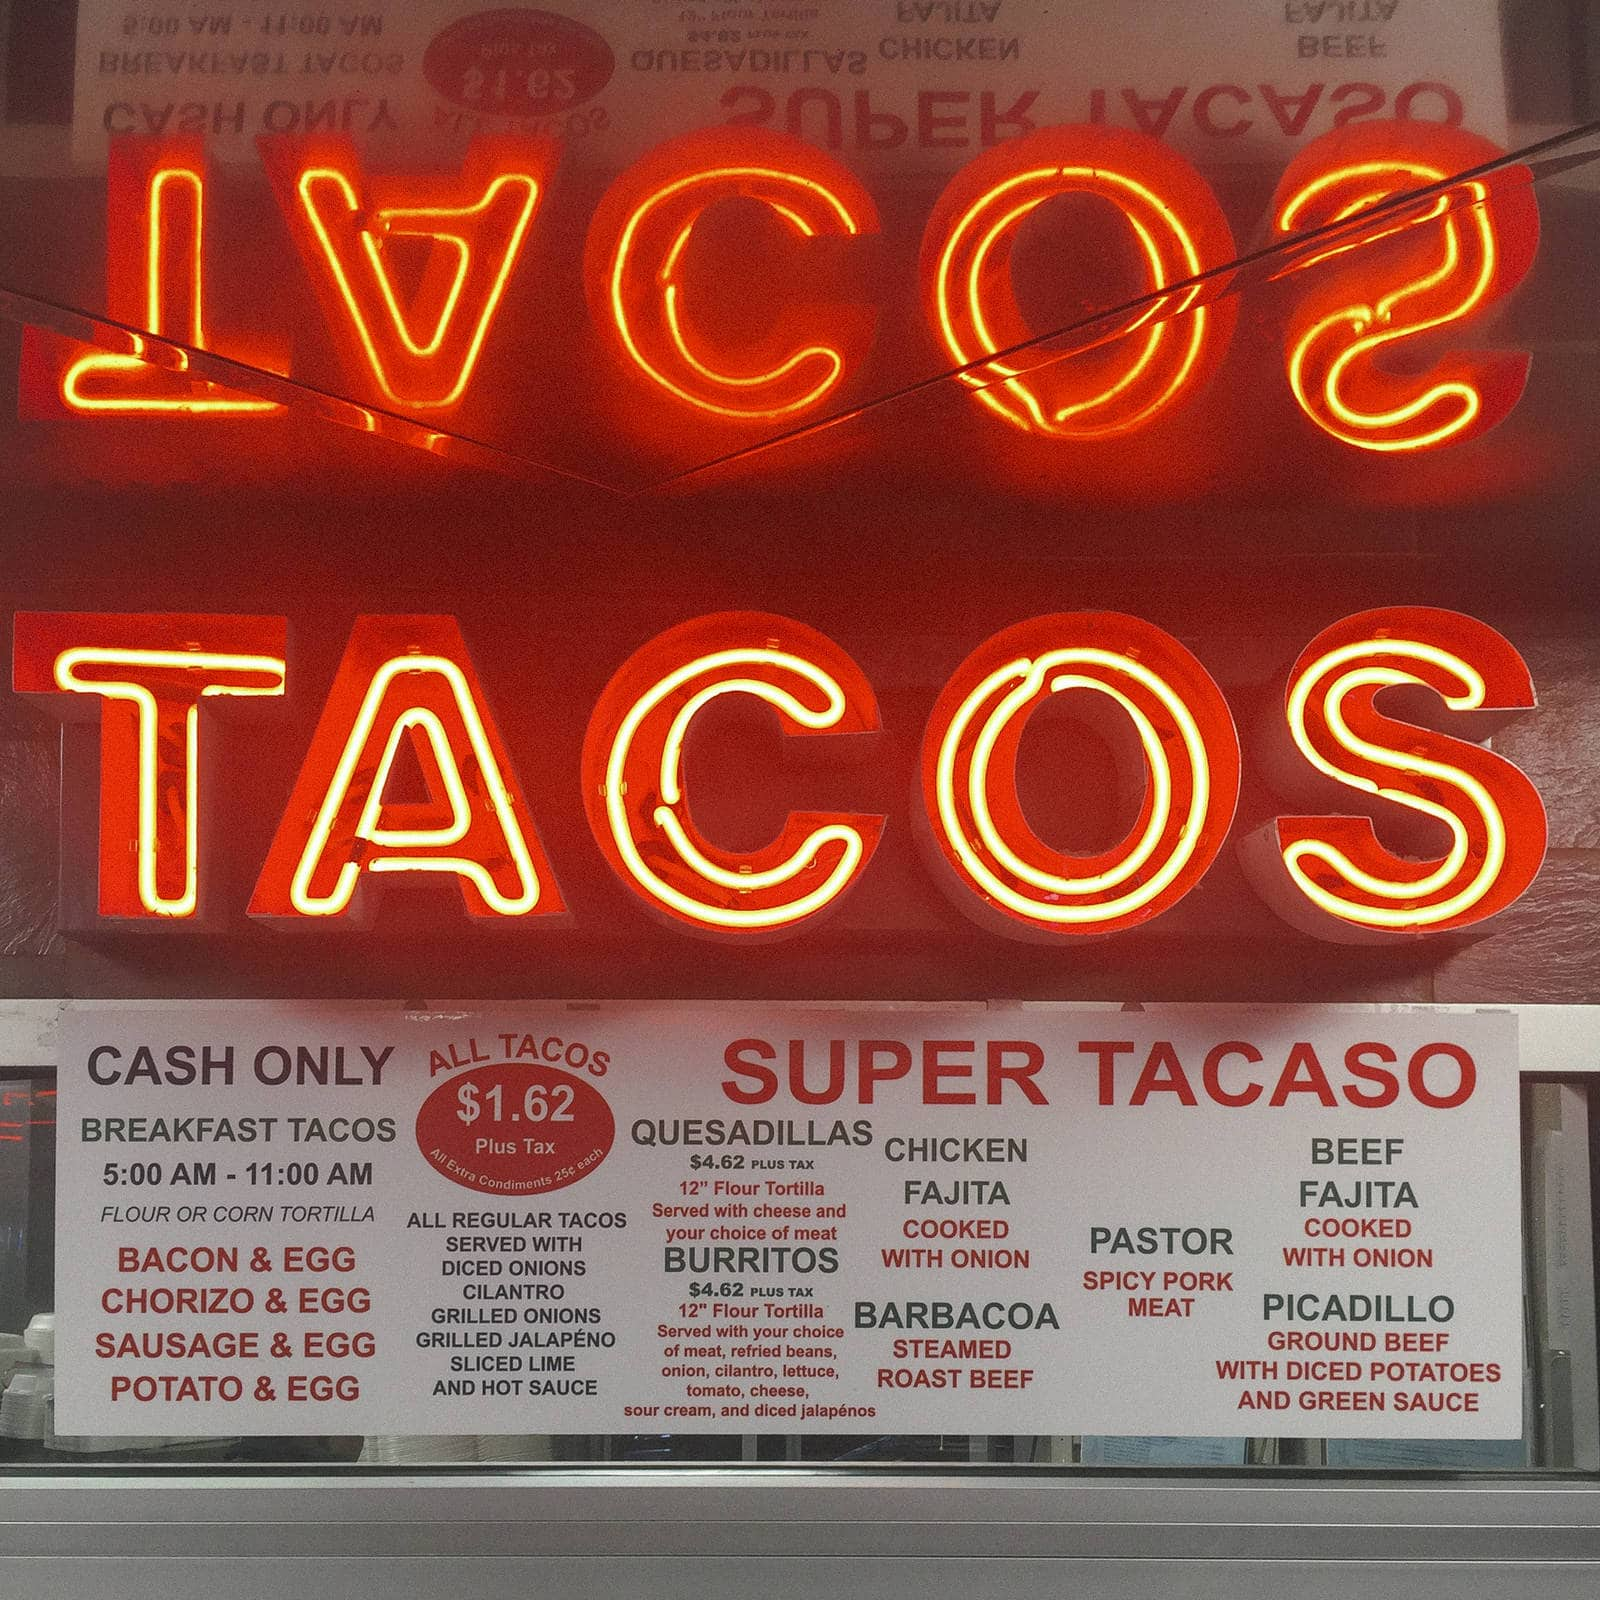 Photos People Remember: Neon Taco sign reflection